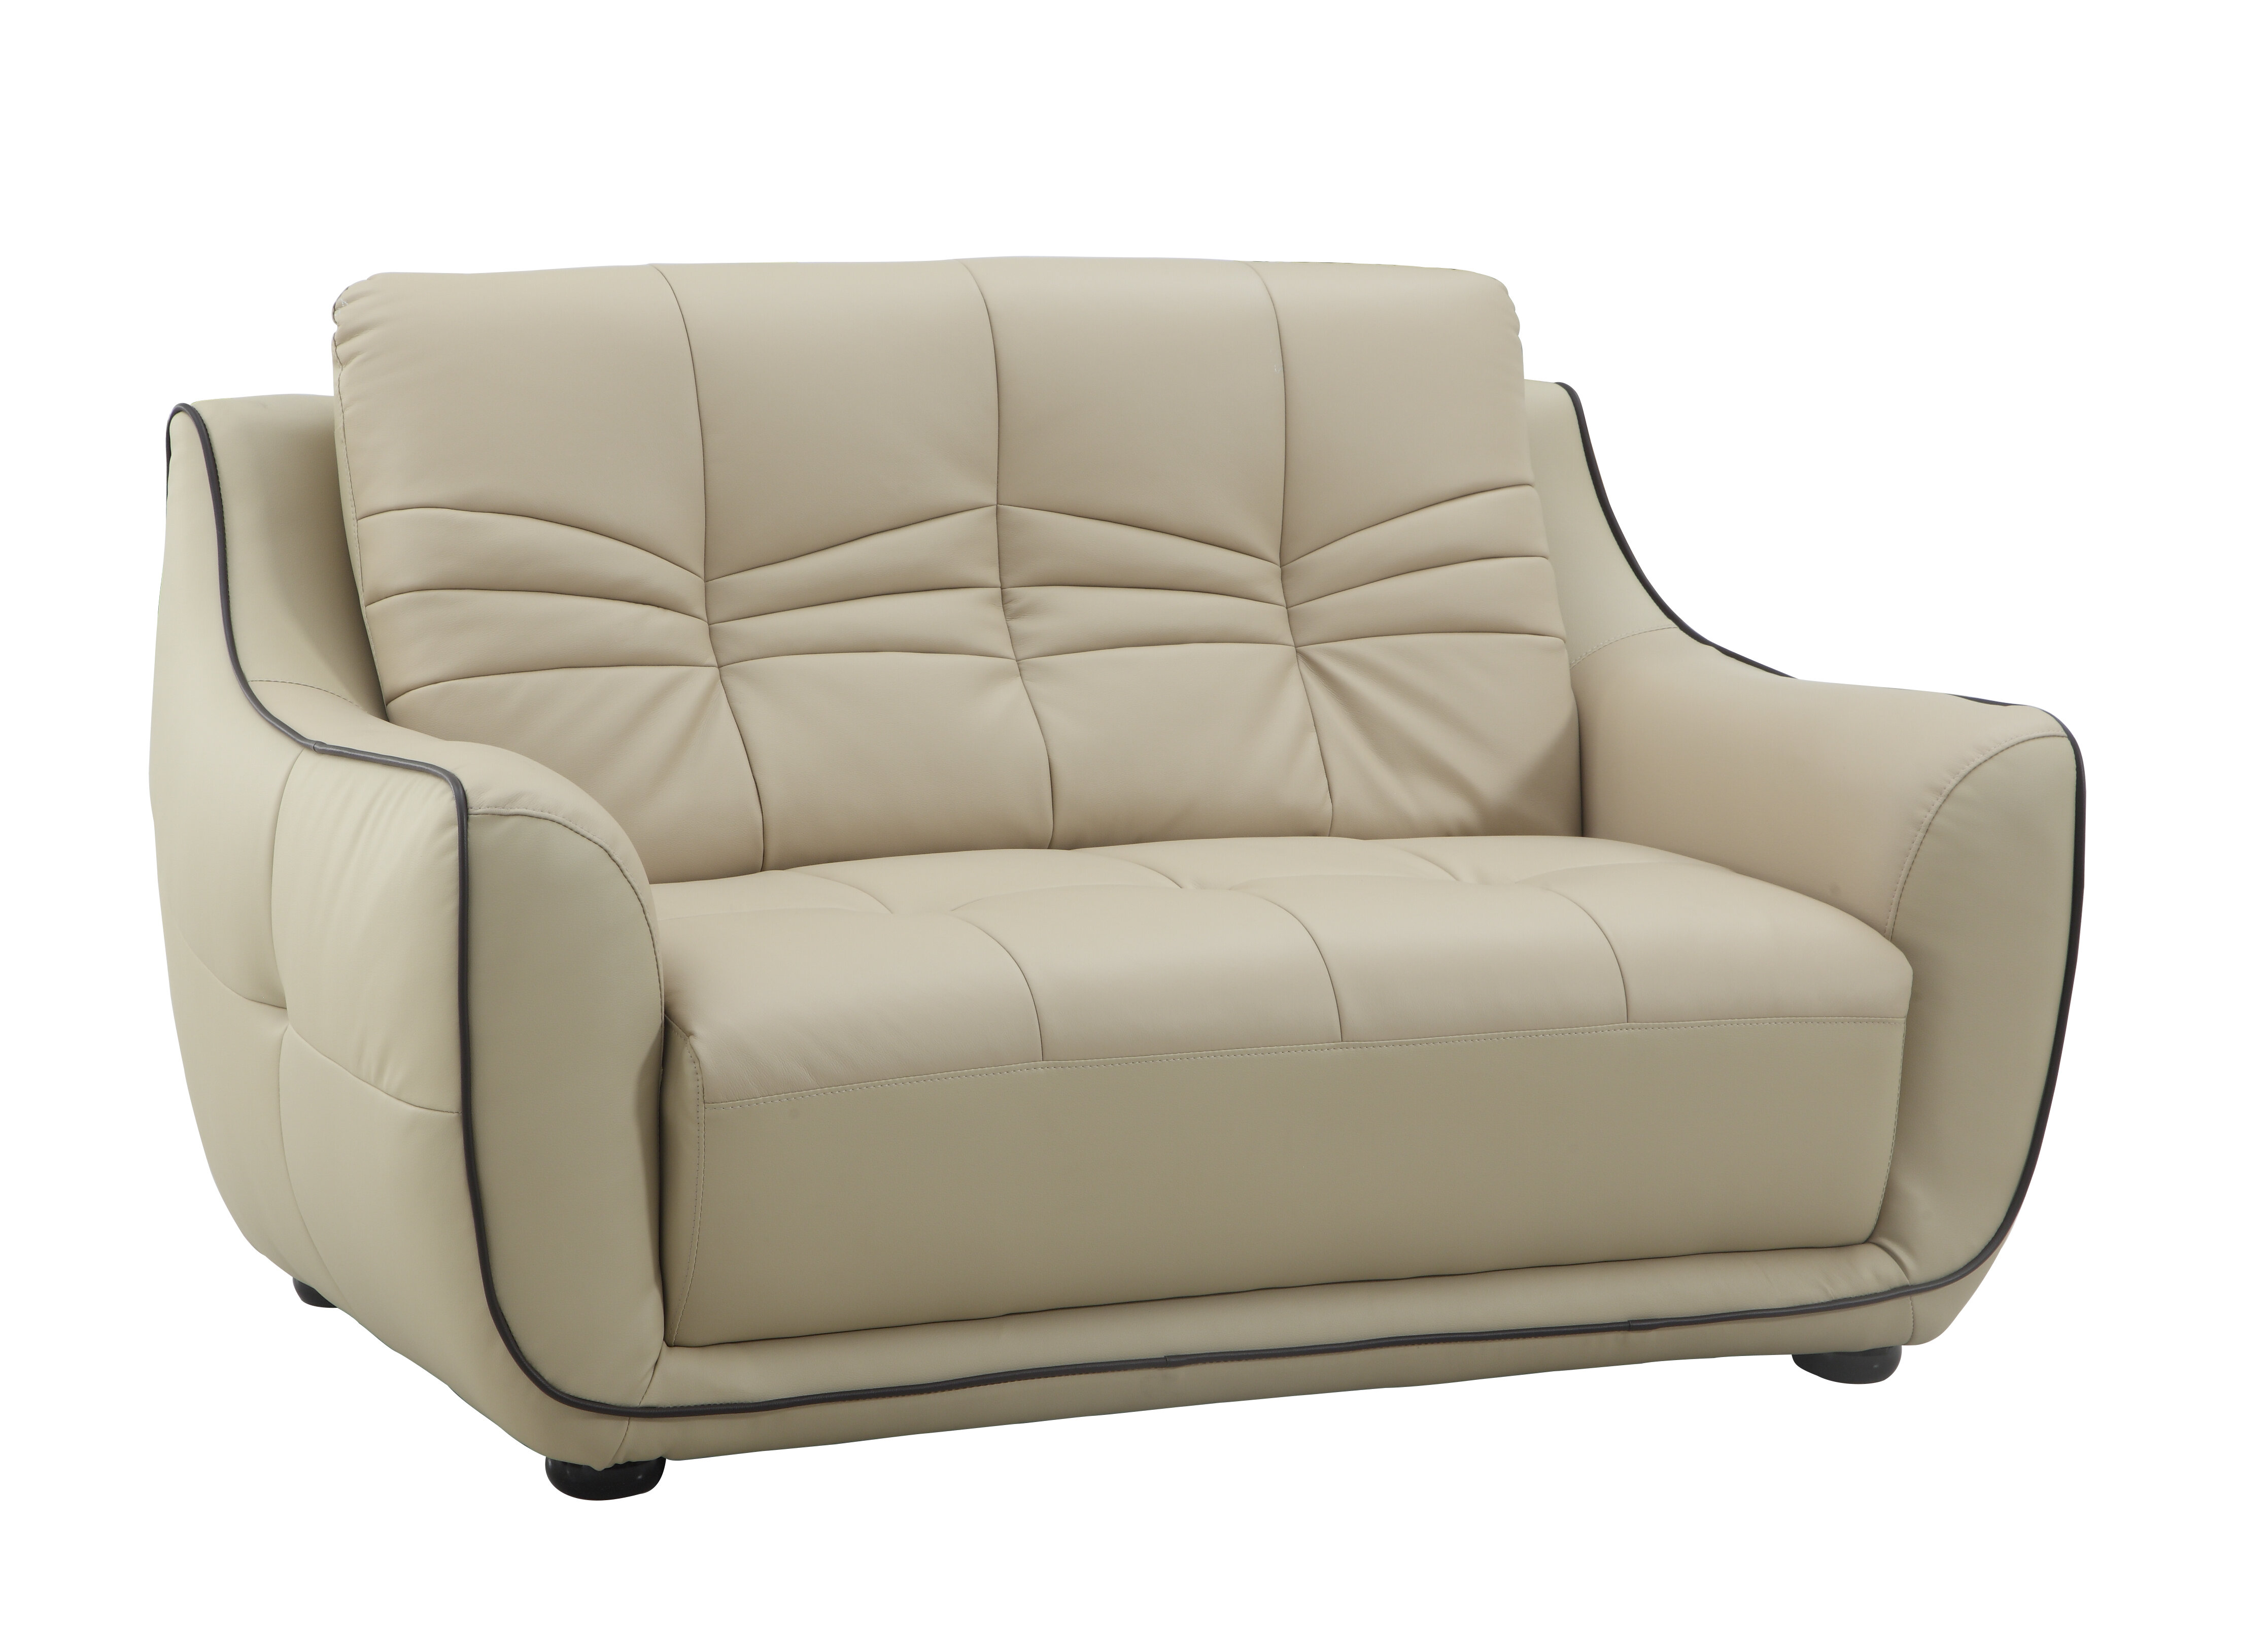 Groovy Henthorn Upholstered Living Room Loveseat Bralicious Painted Fabric Chair Ideas Braliciousco